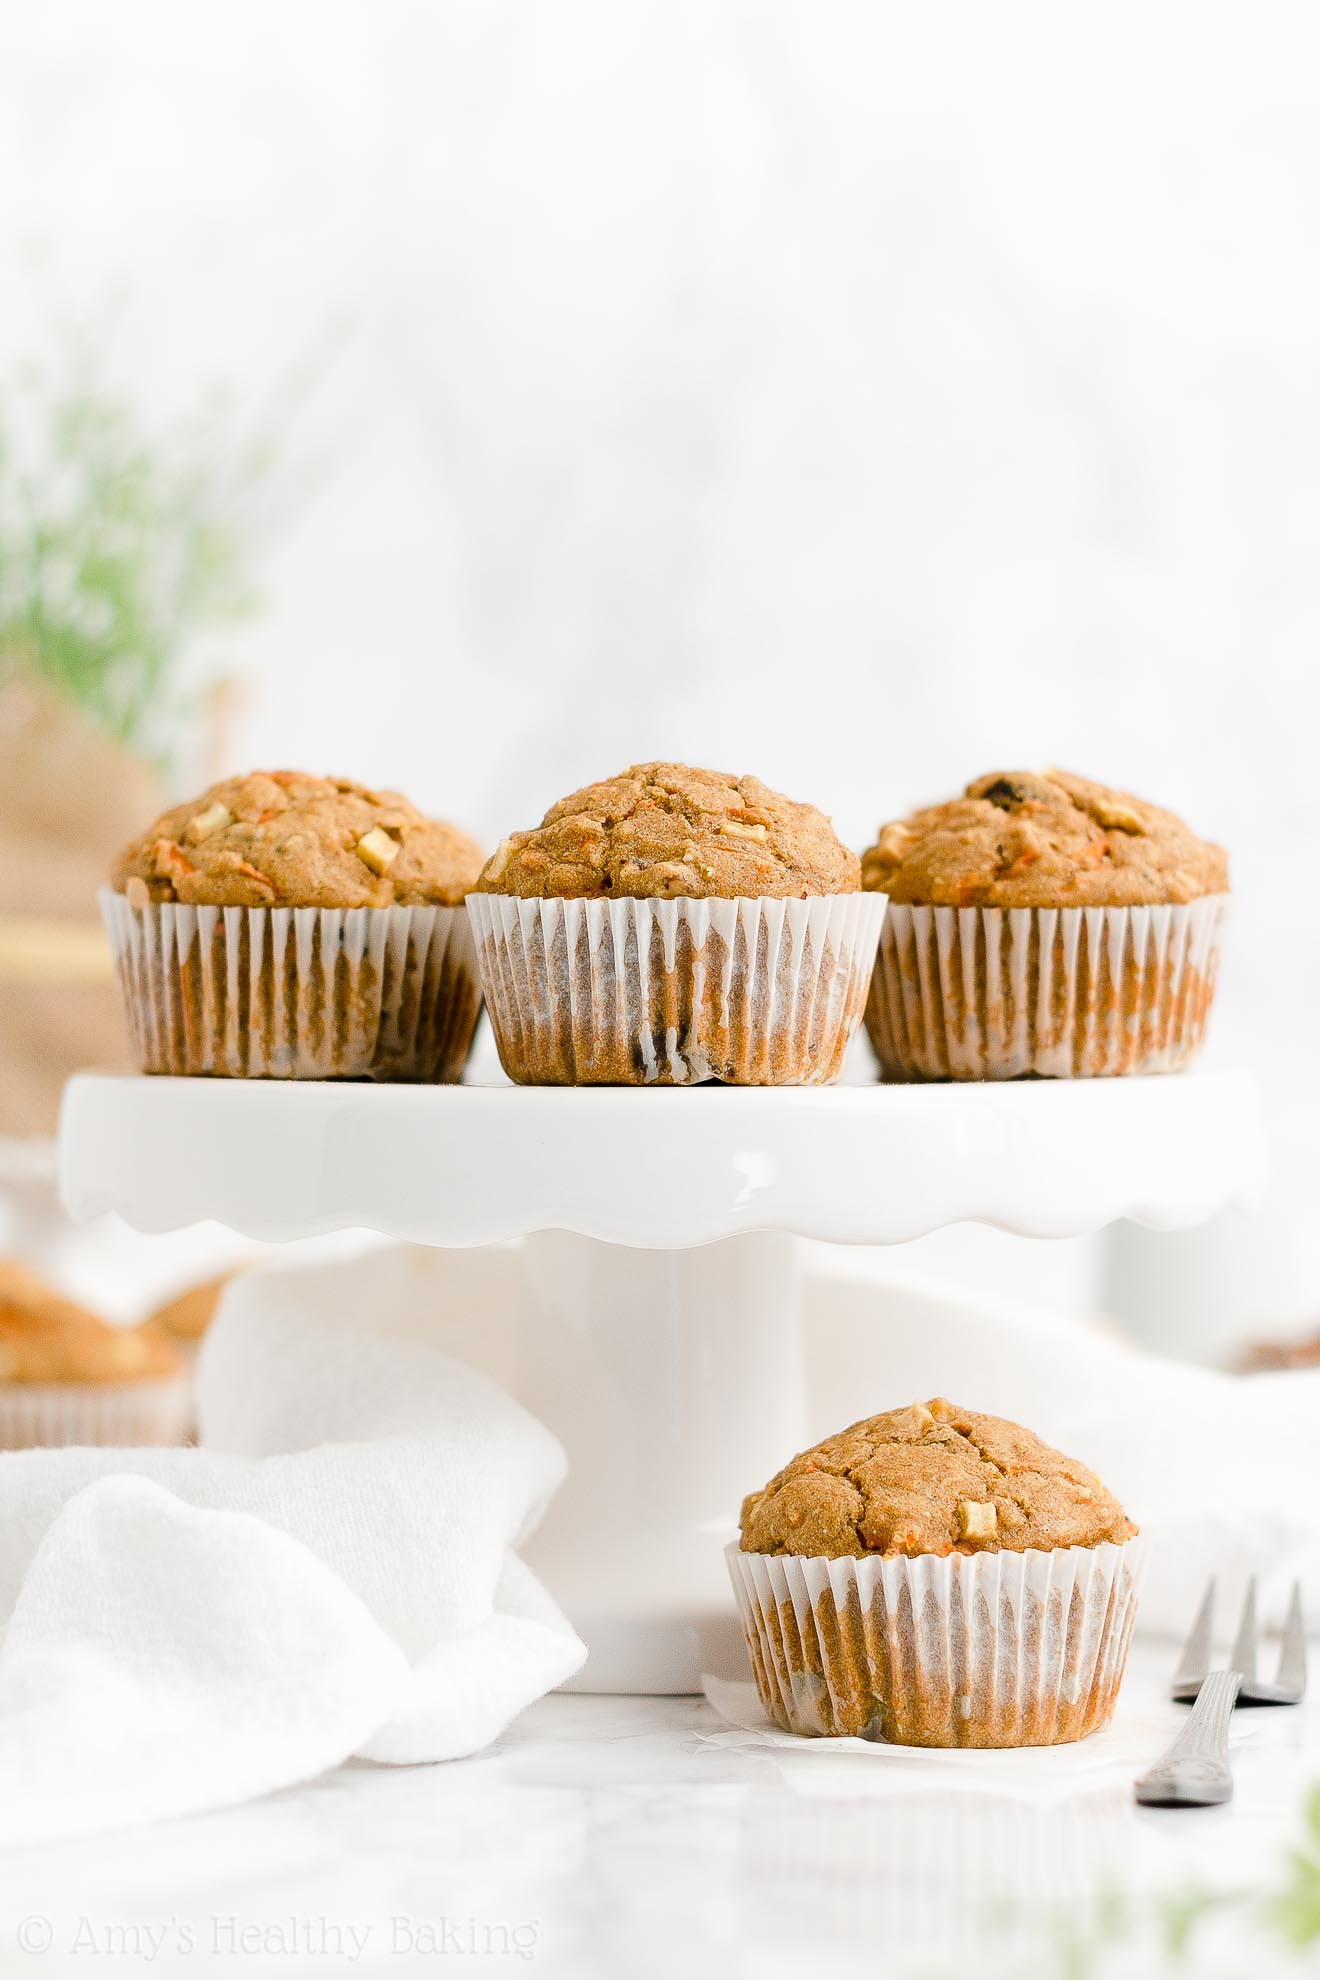 Best Easy Healthy Clean Eating Whole Wheat Morning Glory Oatmeal Muffins